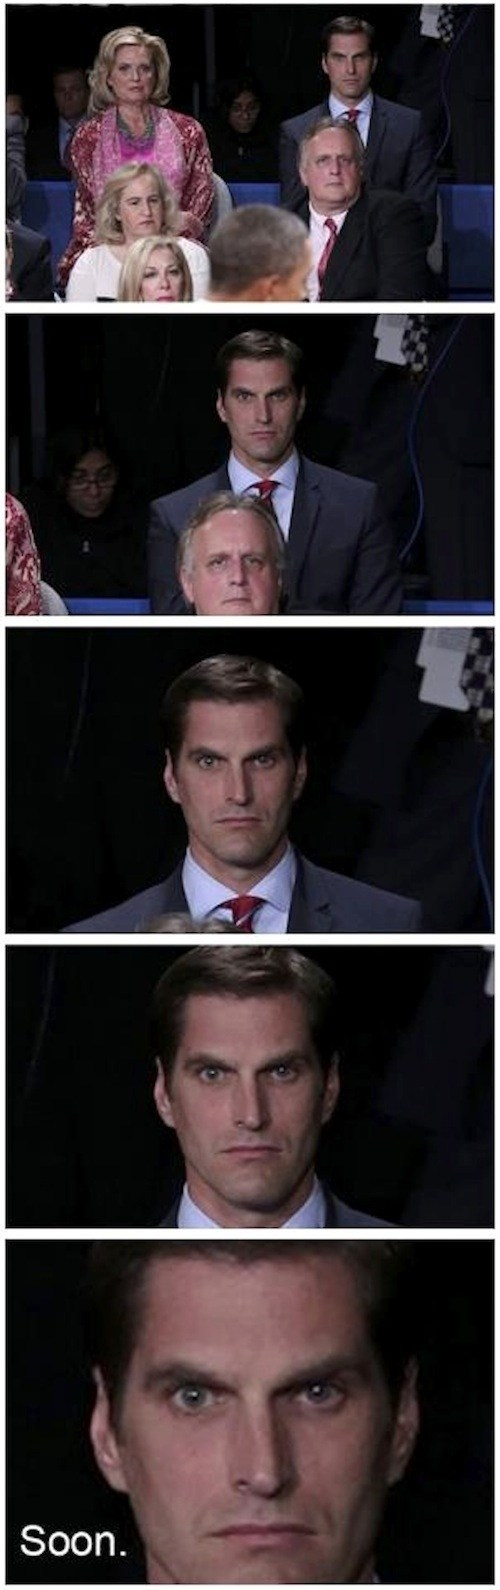 Josh Romney,Ann Romney,barack obama,Staring,reaction,SOON,debate,Mitt Romney